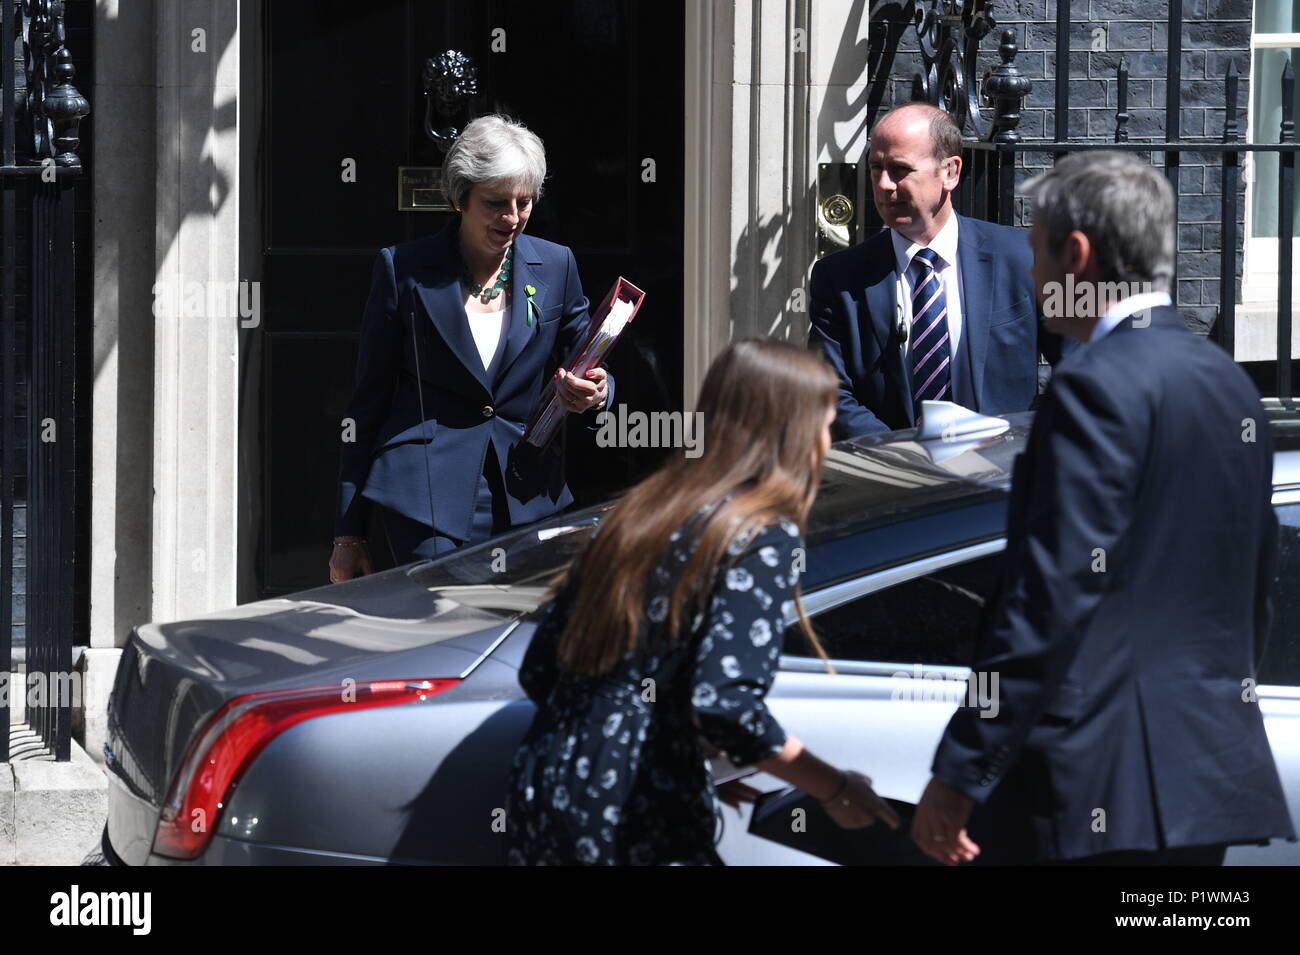 Prime Minister Theresa May leaves 10 Downing Street, London, for the House of Commons to face Prime Minister's Questions. Picture date: Wednesday June 13, 2018. See PA story POLITICS PMQs. Photo credit should read: Stefan Rousseau/PA Wire - Stock Image